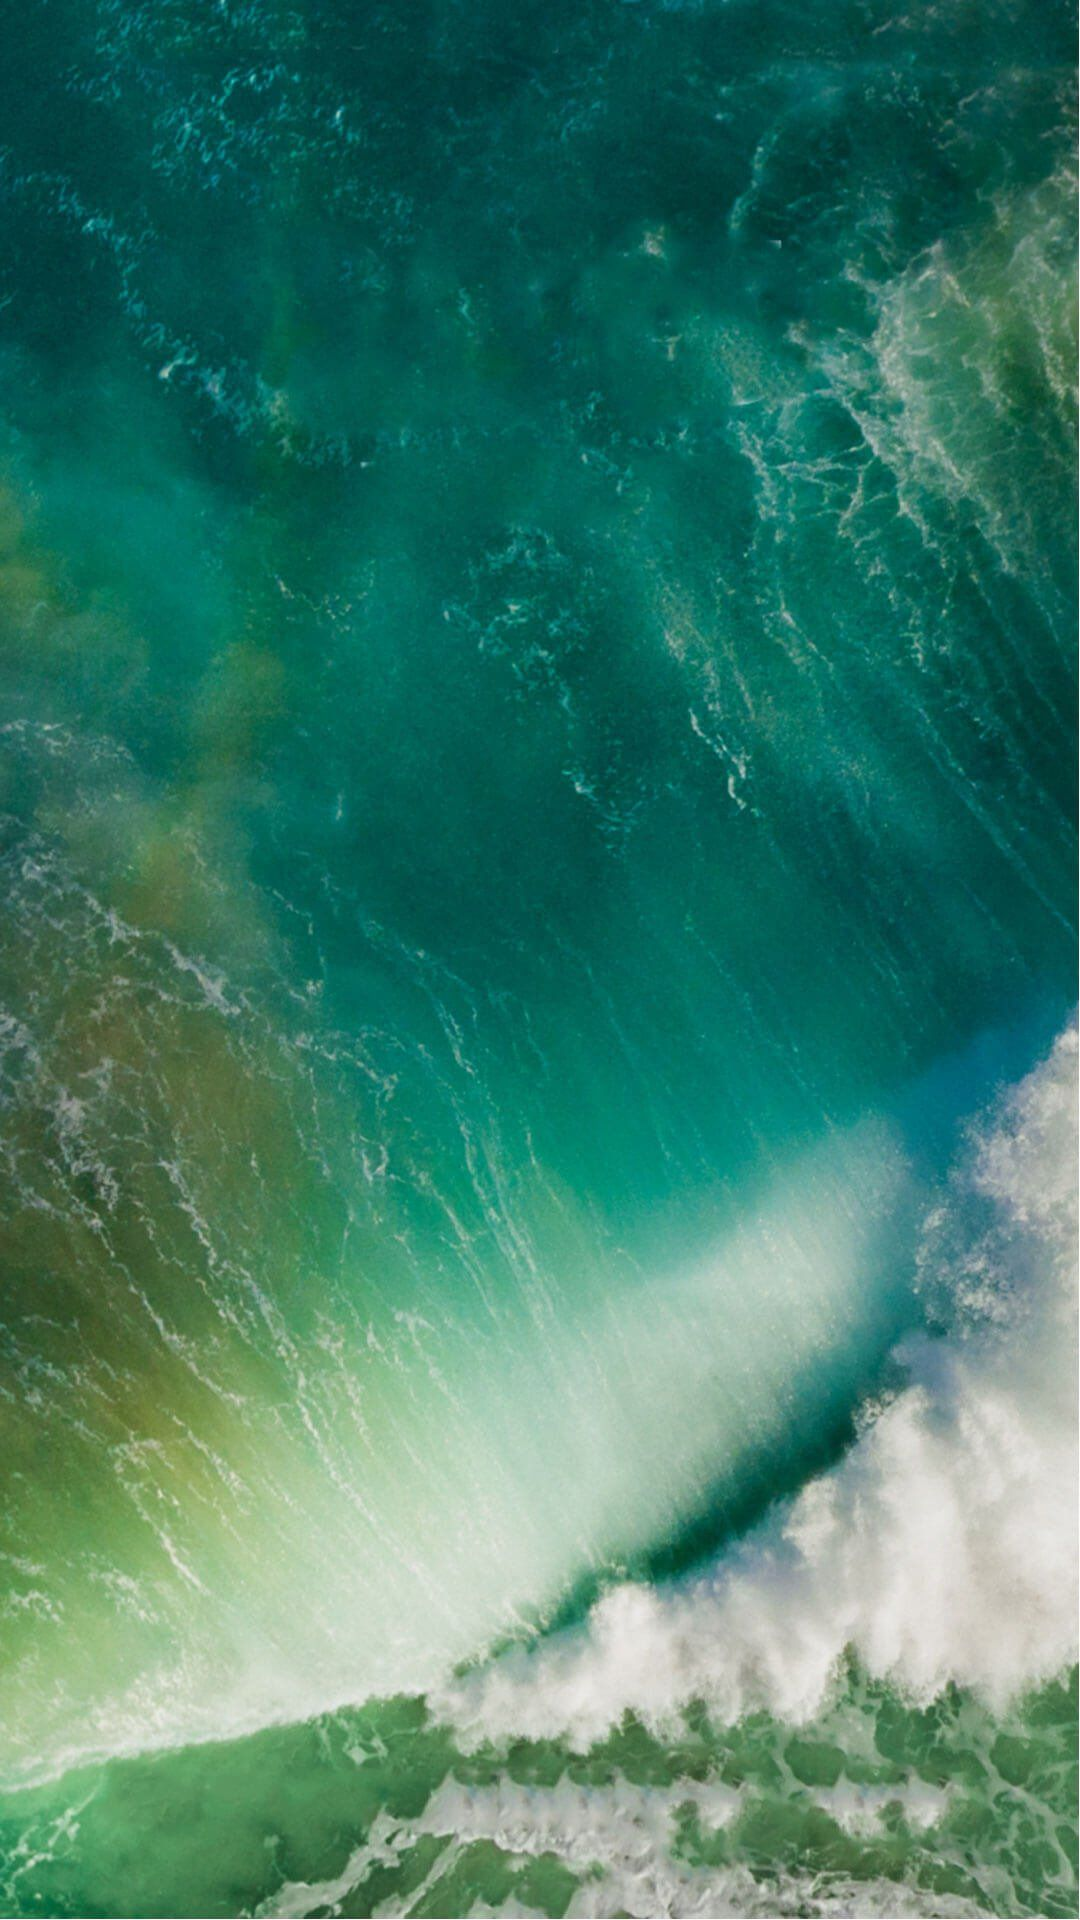 iPhone 8 HD 1080p Wallpapers - Wallpaper Cave